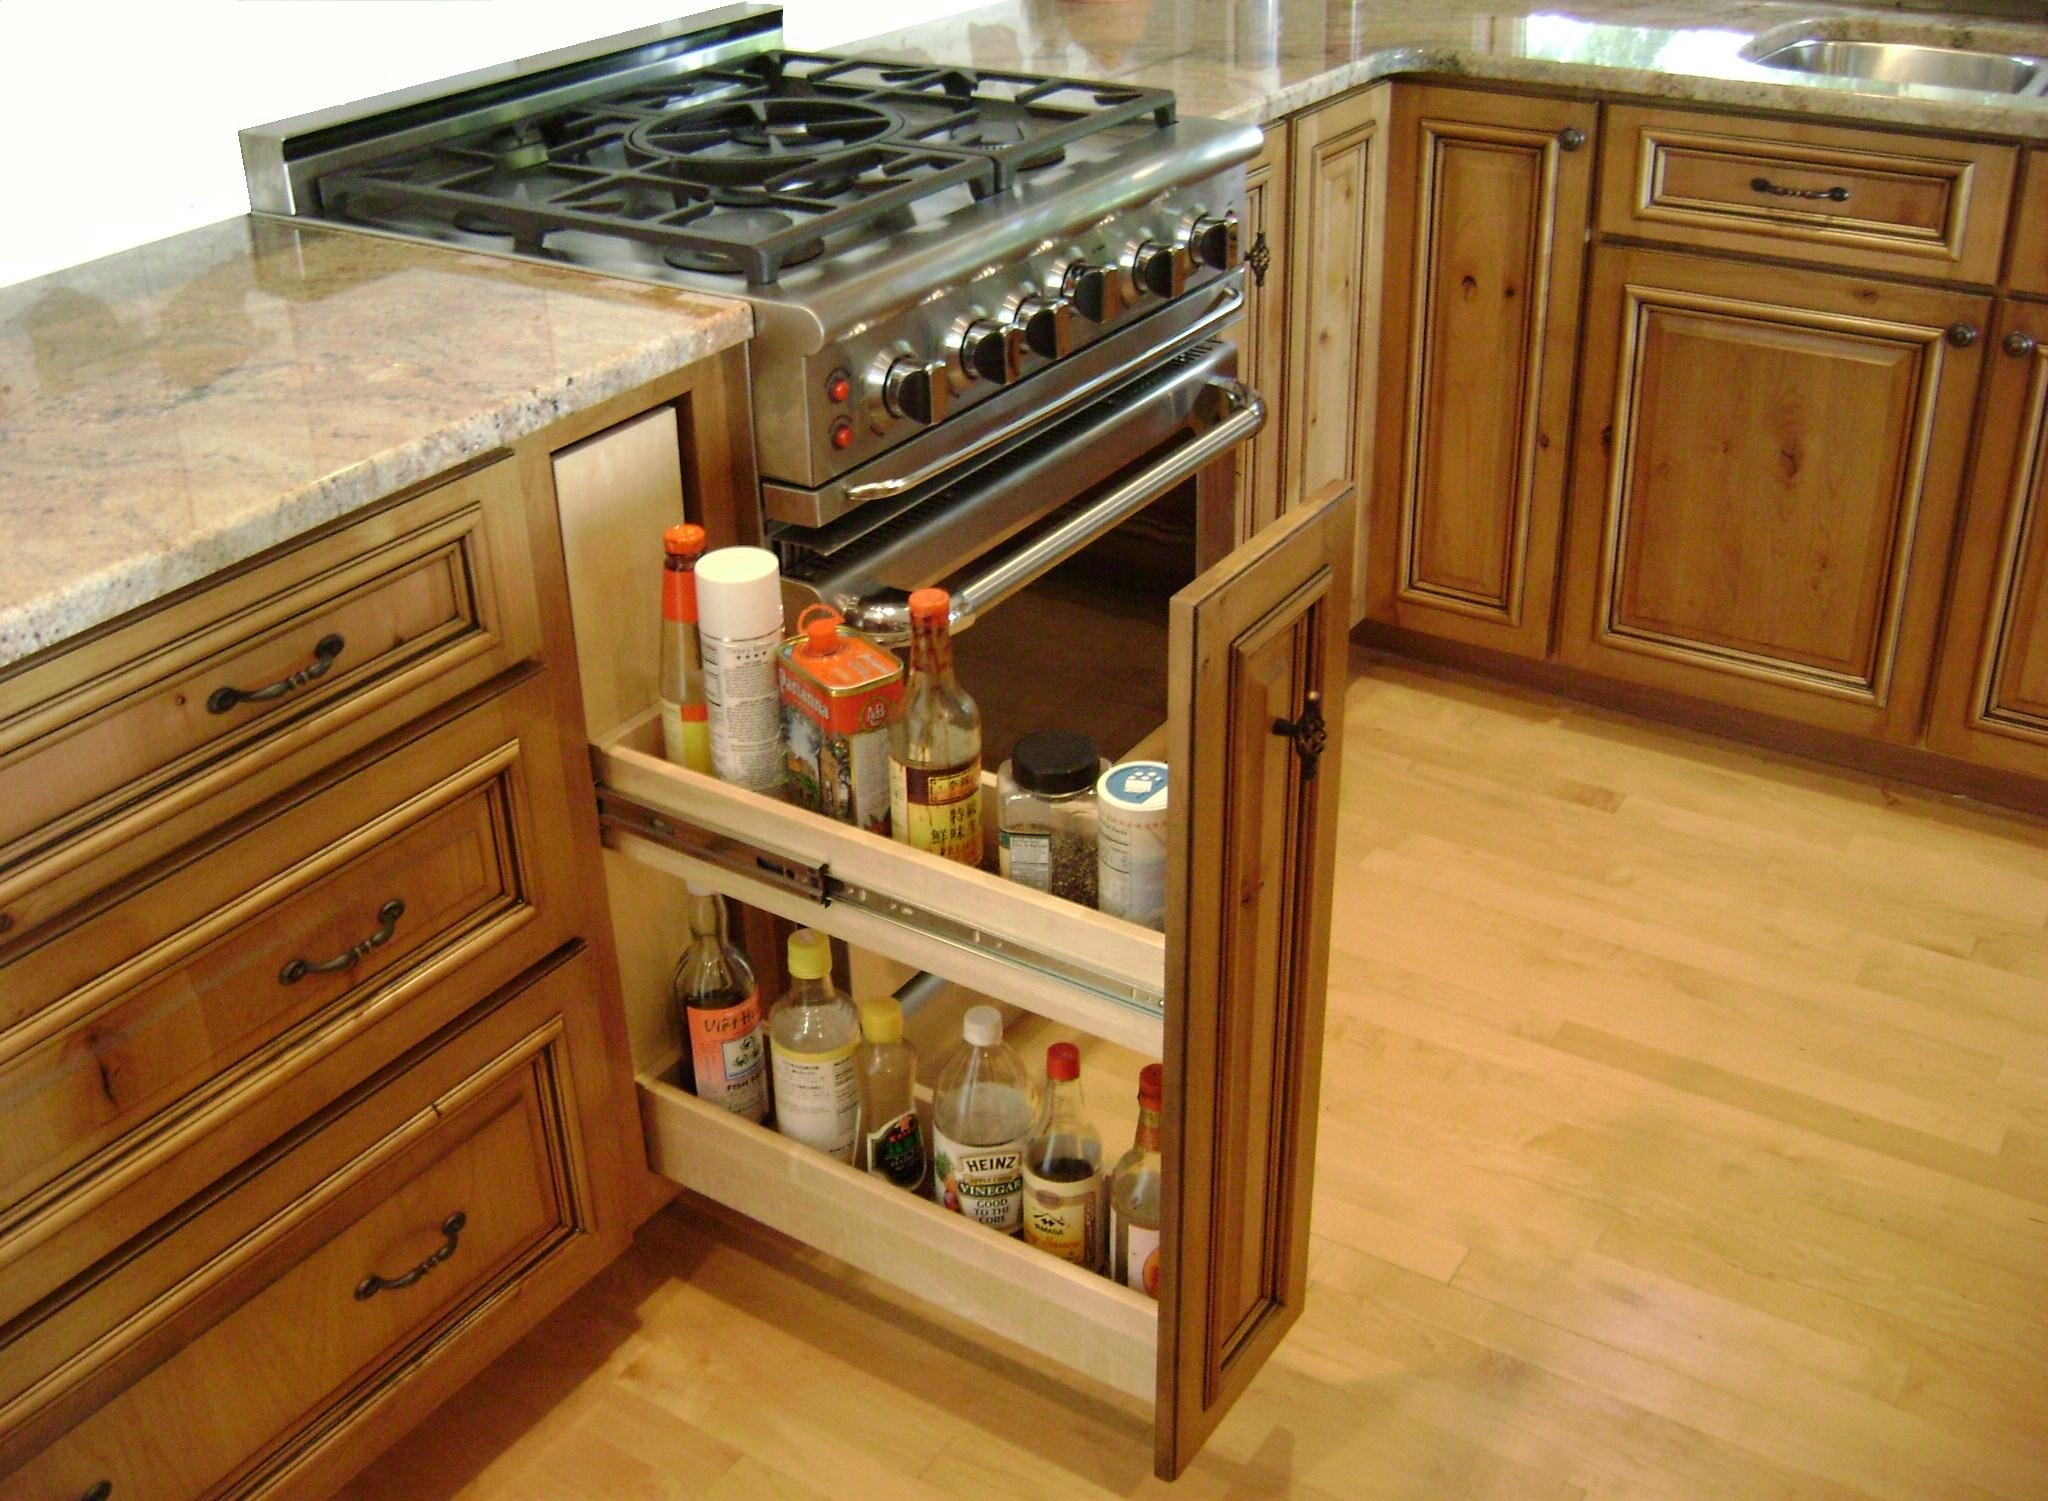 Carousel Spice Racks For Kitchen Cabinets